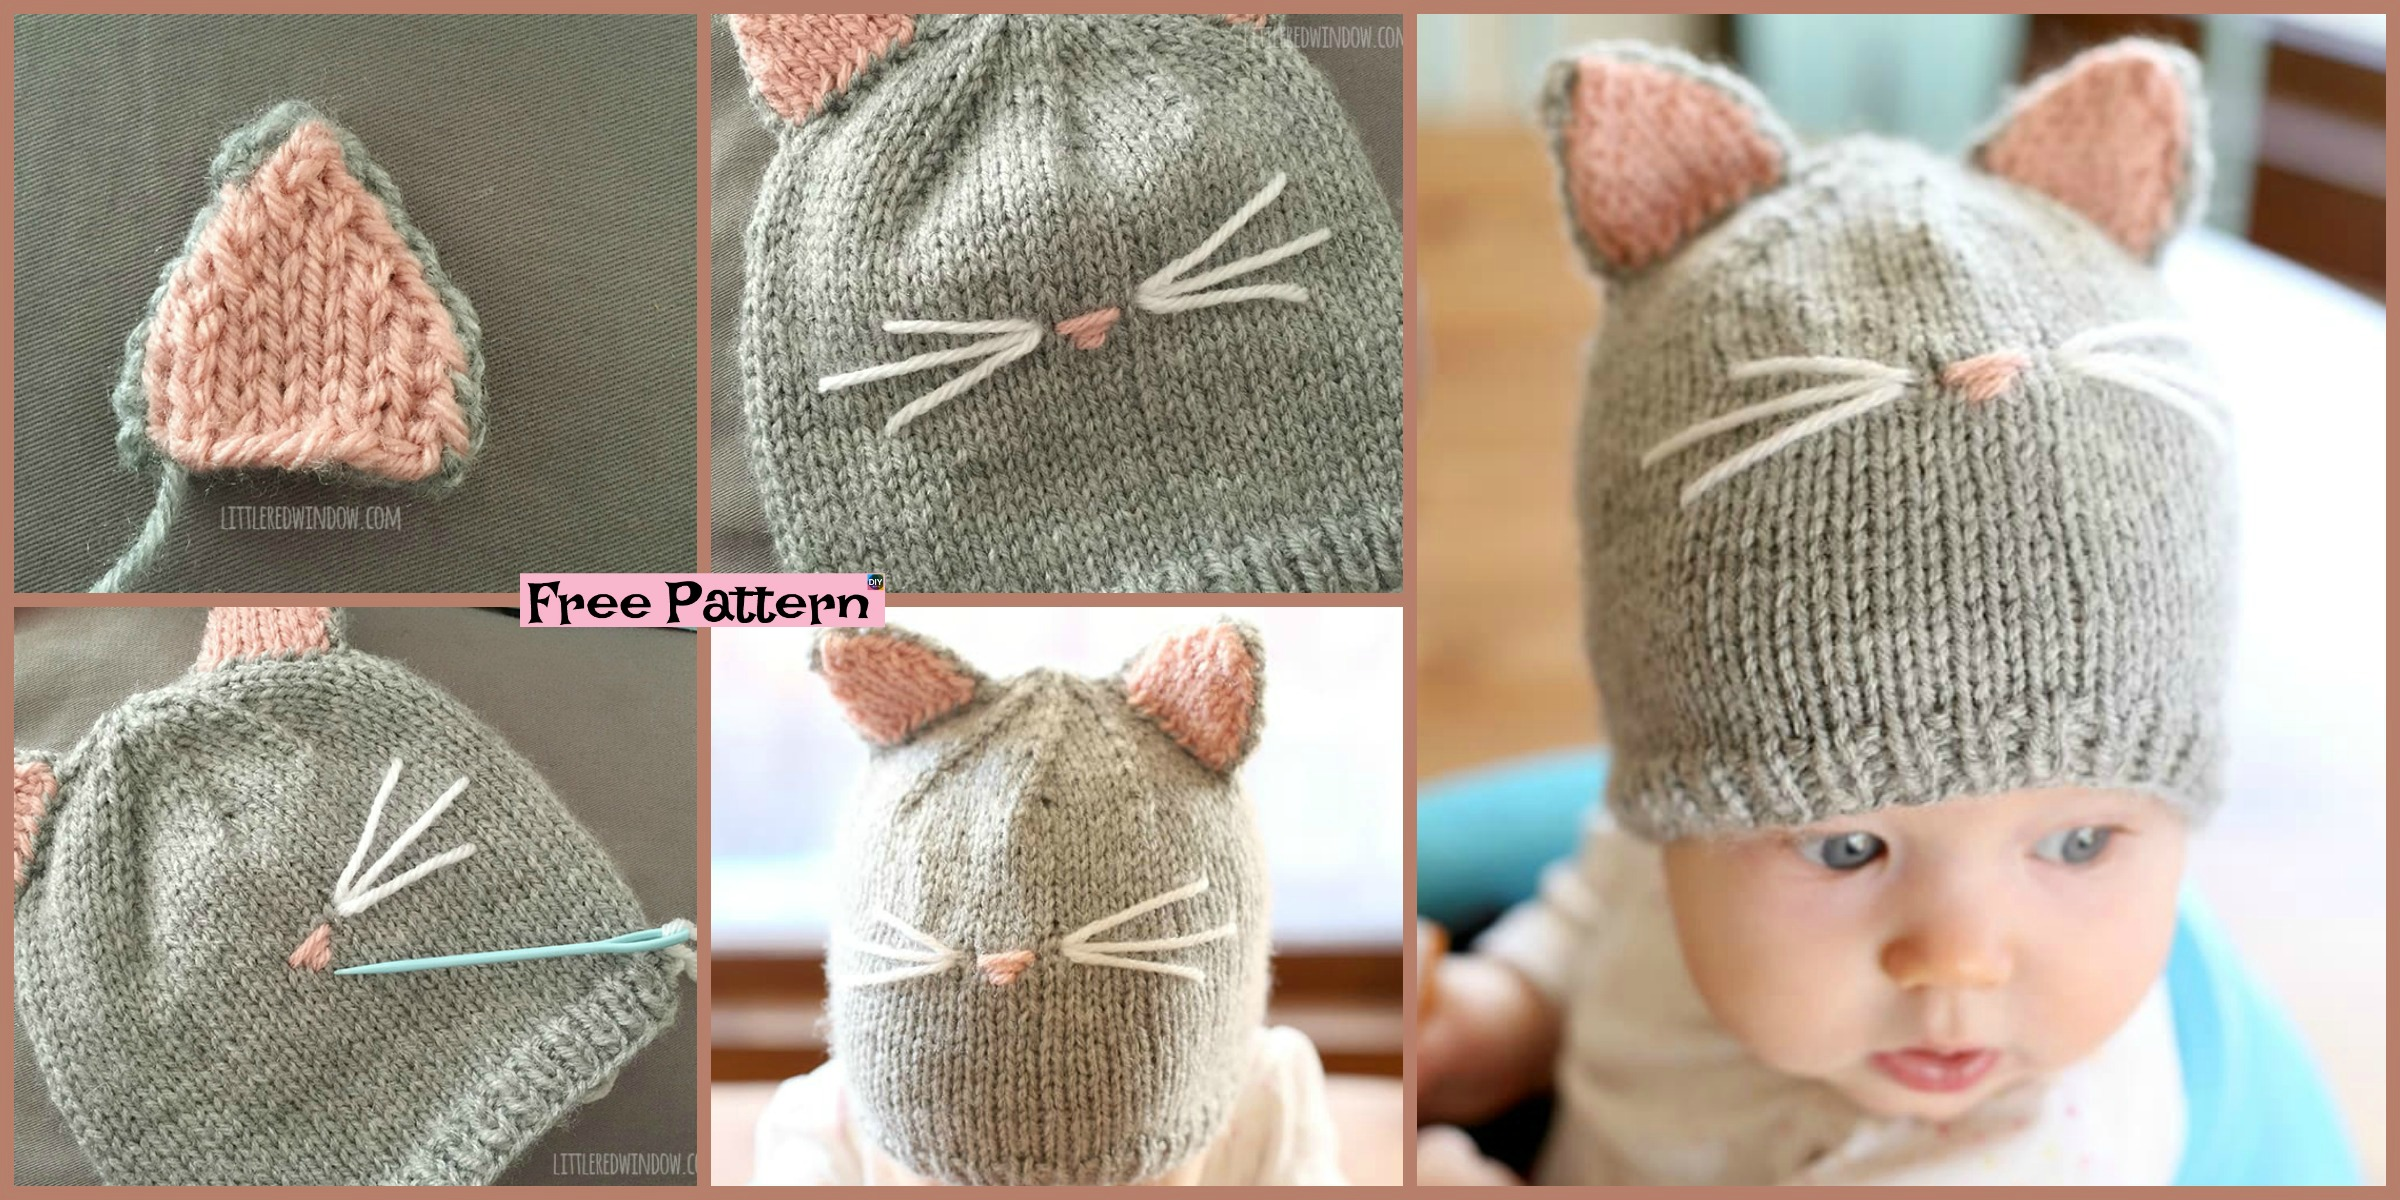 diy4ever Knitting Kitty Cat Hat Free Pattern F - Adorable Knit Kids' Backpack - Free Pattern